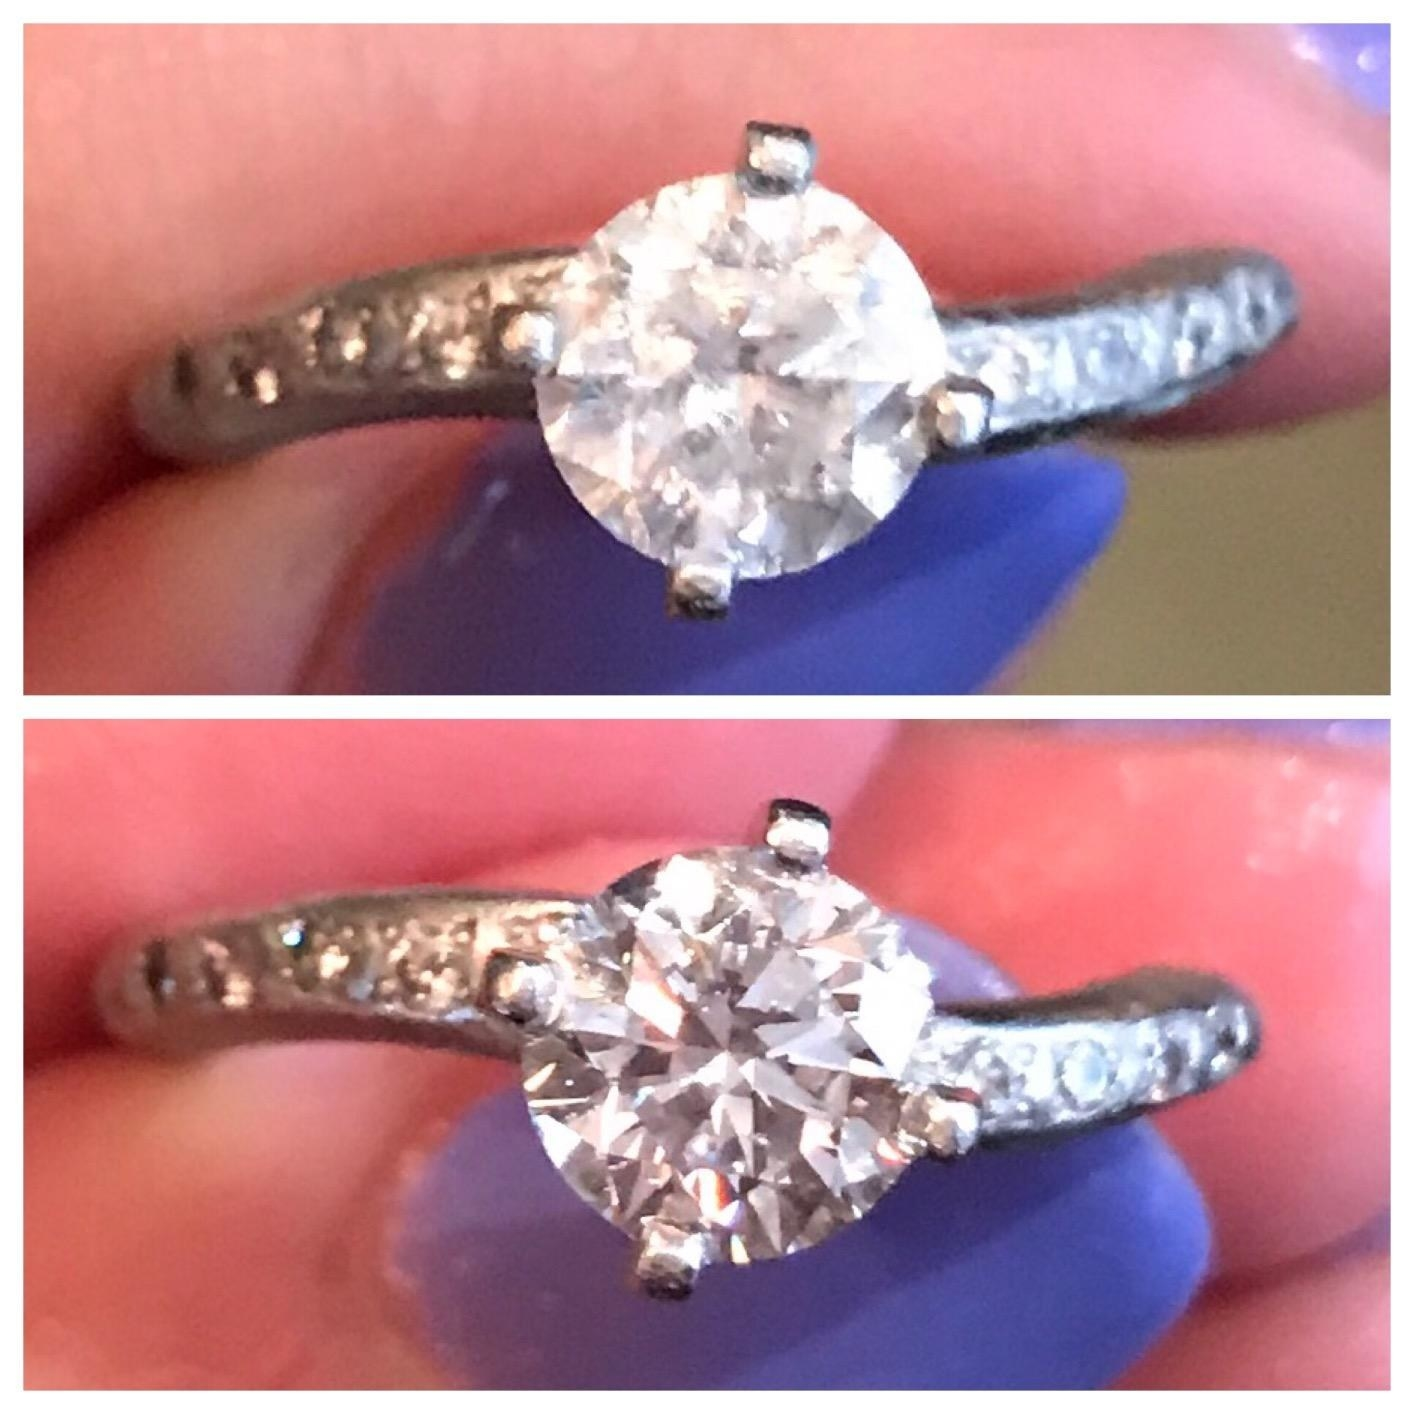 Reviewer's photo of a cloudy diamond ring next to an after photo of a much more clear, defined, and shiny ring